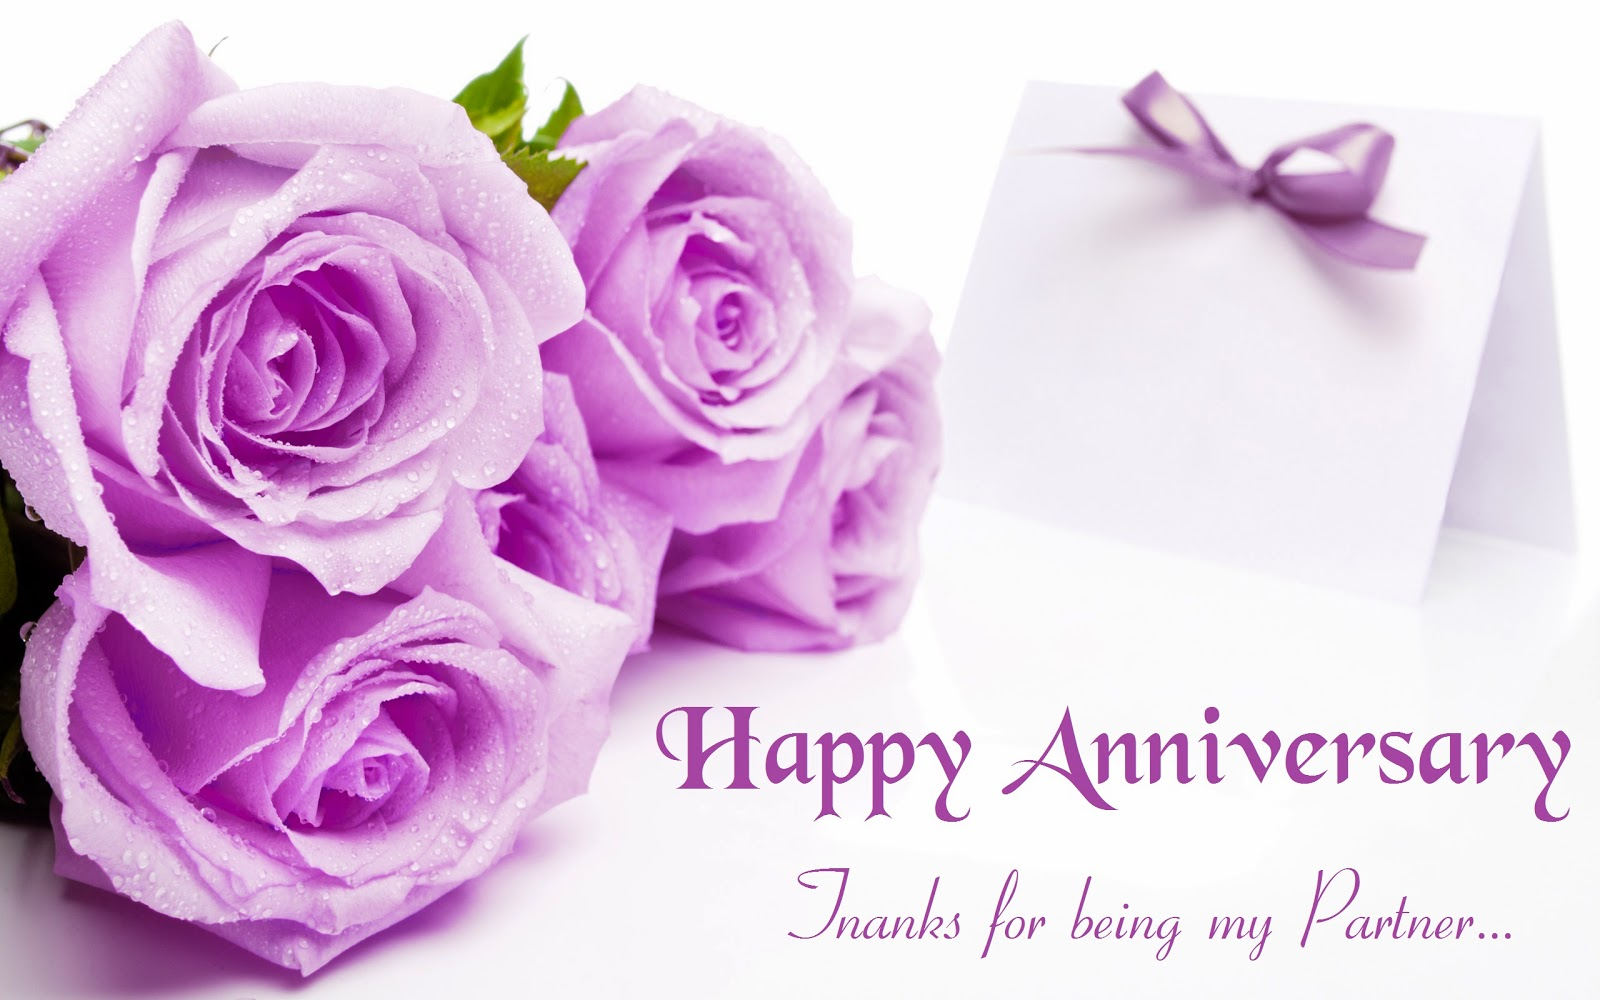 Special anniversary wishes cards for my love partner festival chaska